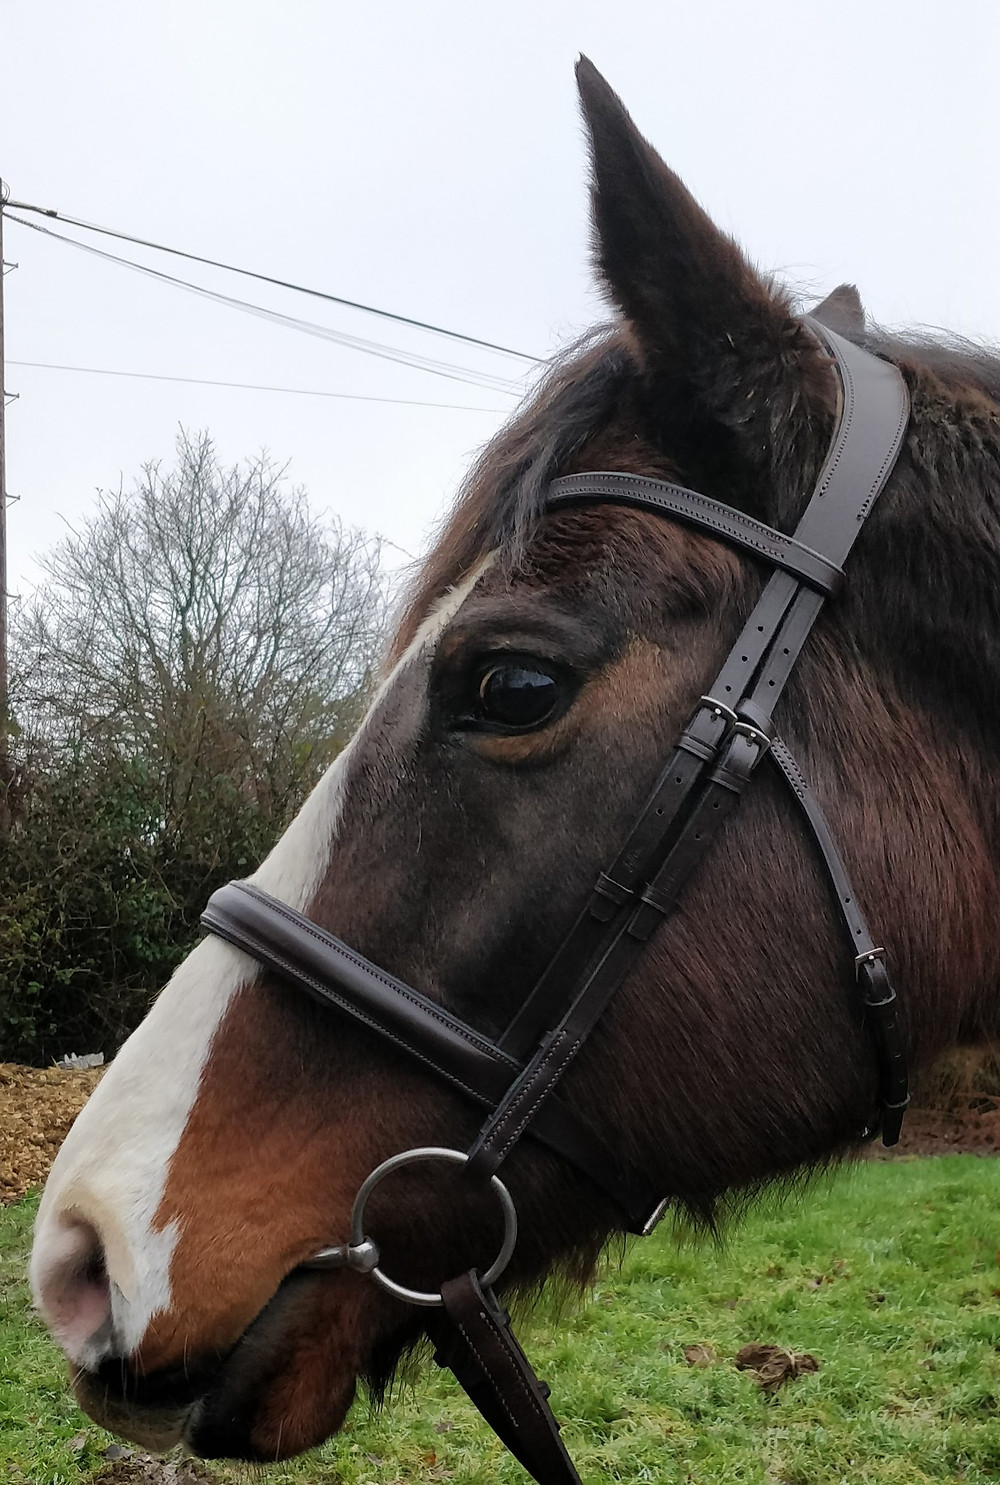 Hyoid, TMJ, tmj joint ,how to fit a bridle, broadband too tight, anatomical bridle, what is the best bridle for my horse?, noseband pressure, hyoid apparatus, integrates bridle